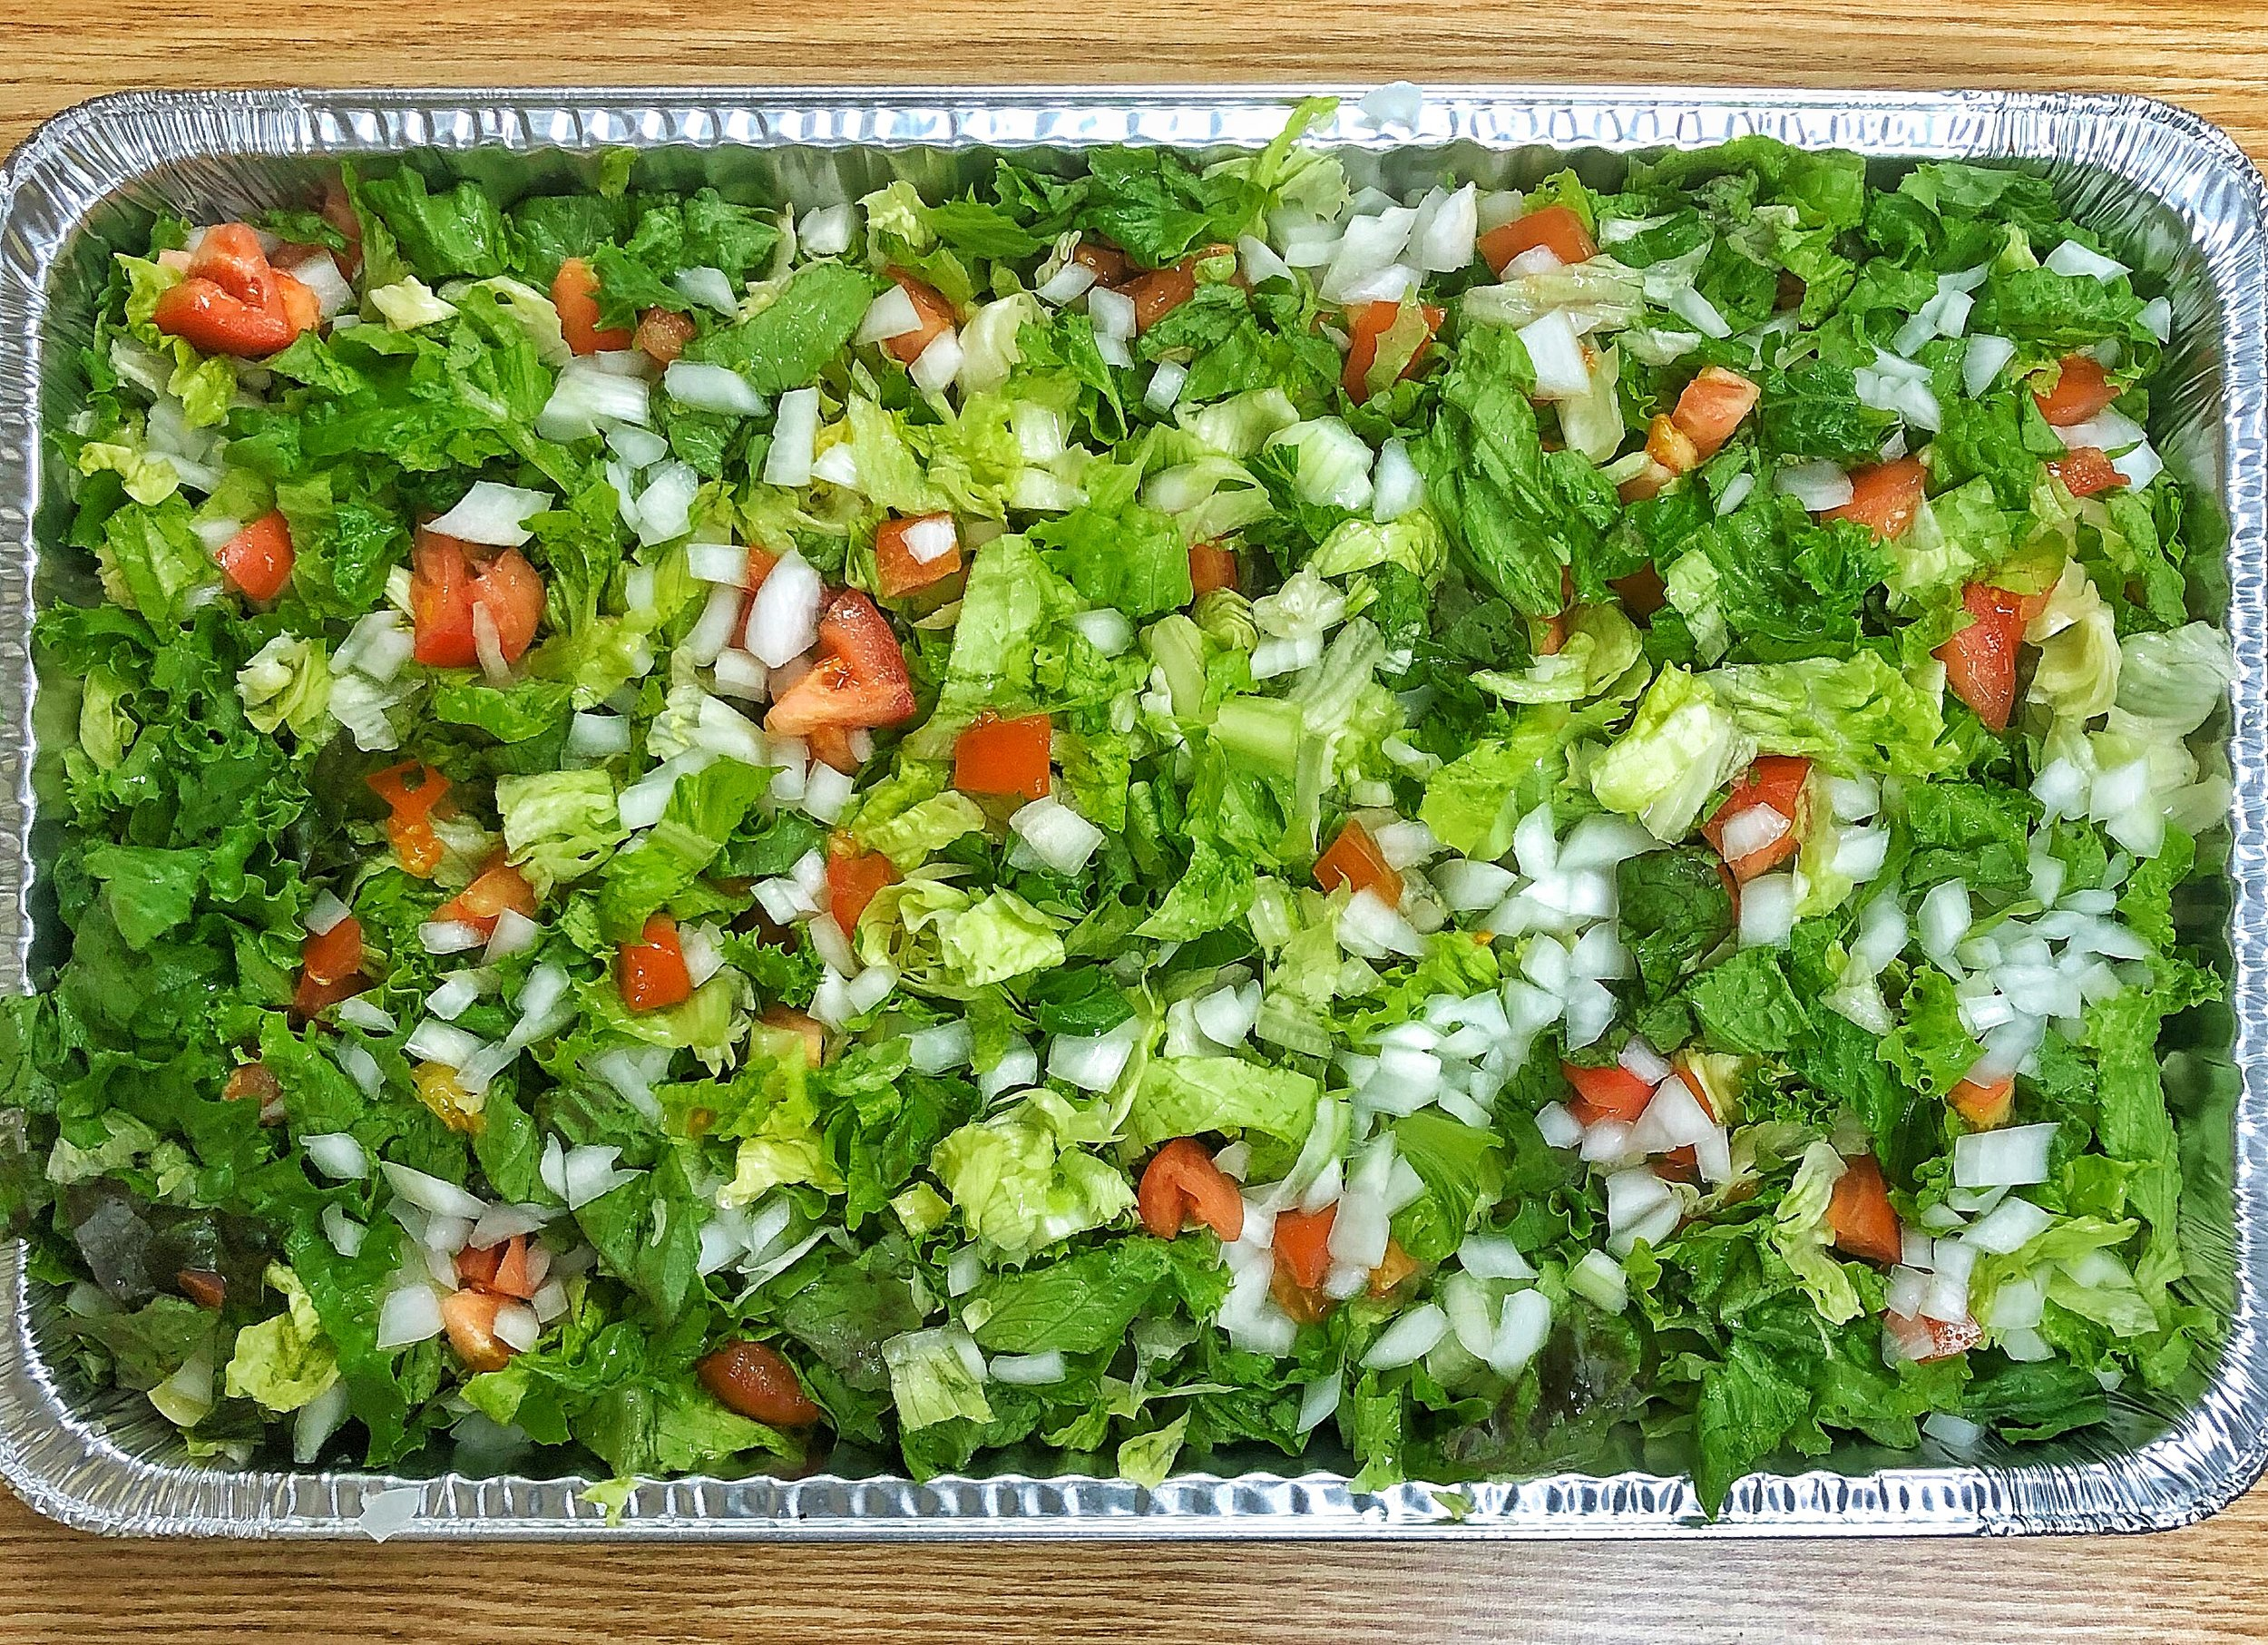 Garden Salad - Includes:- Iceburg Lettuce - Tomato - OnionCan Add- Any type of meat (Extra)- Olives - Any dressing or herbs